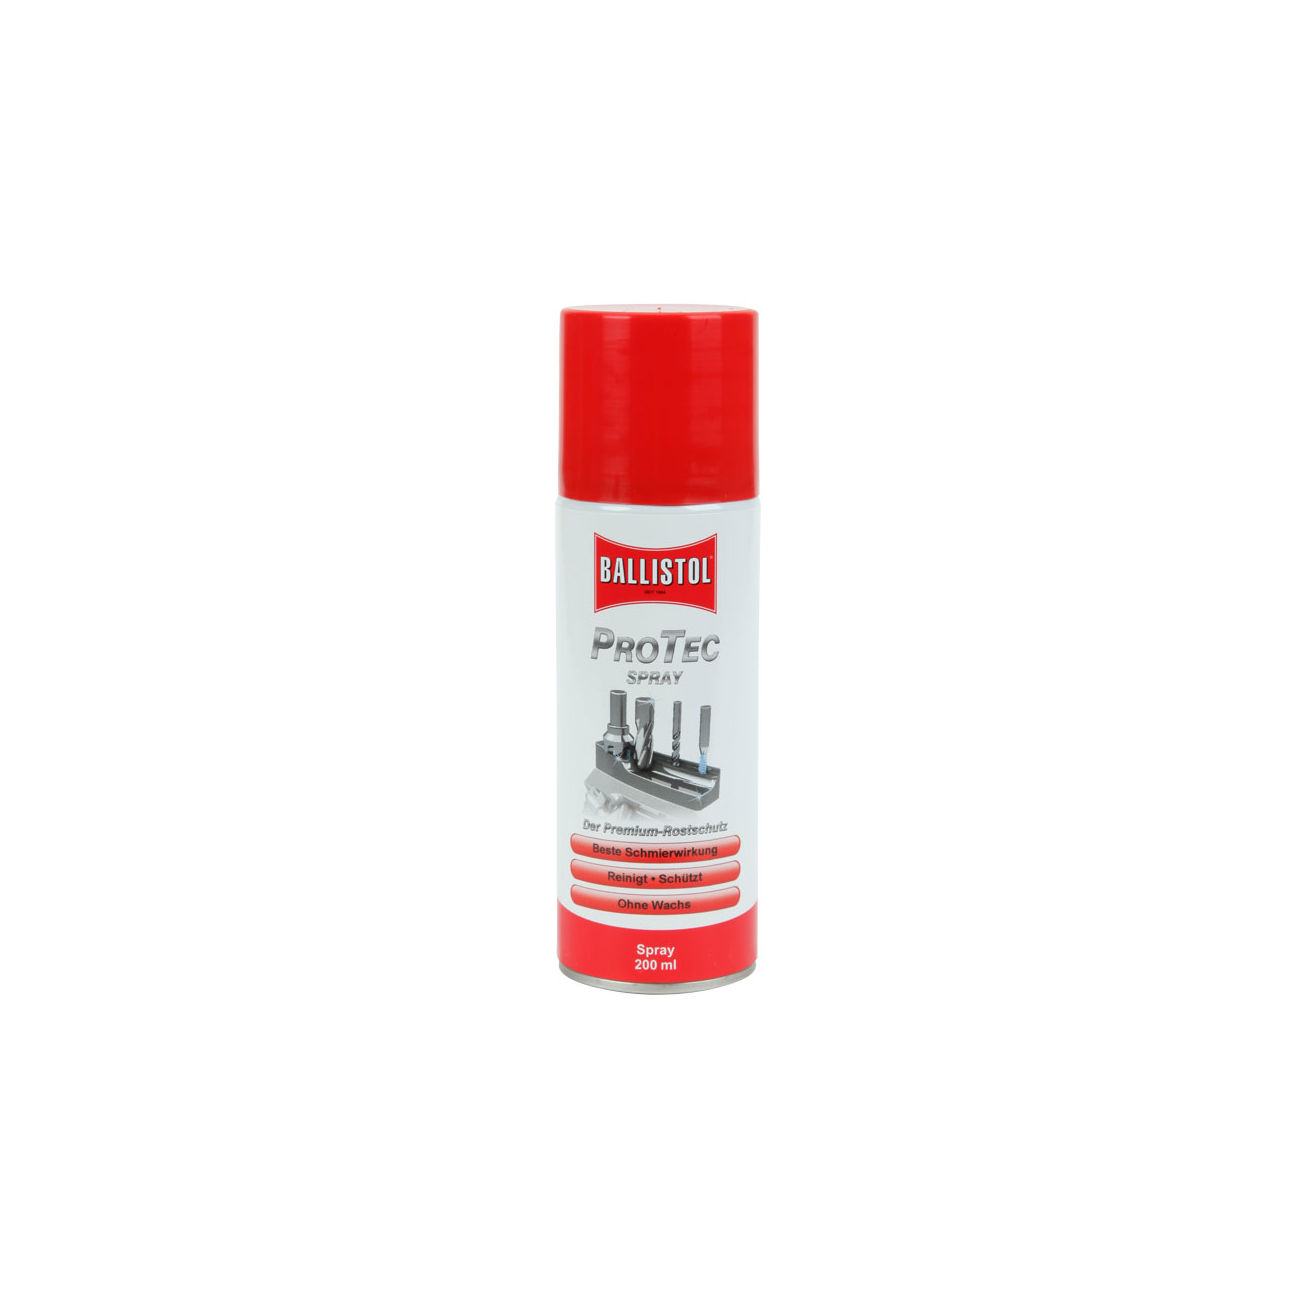 Ballistol ProTec 200ml Spray 0